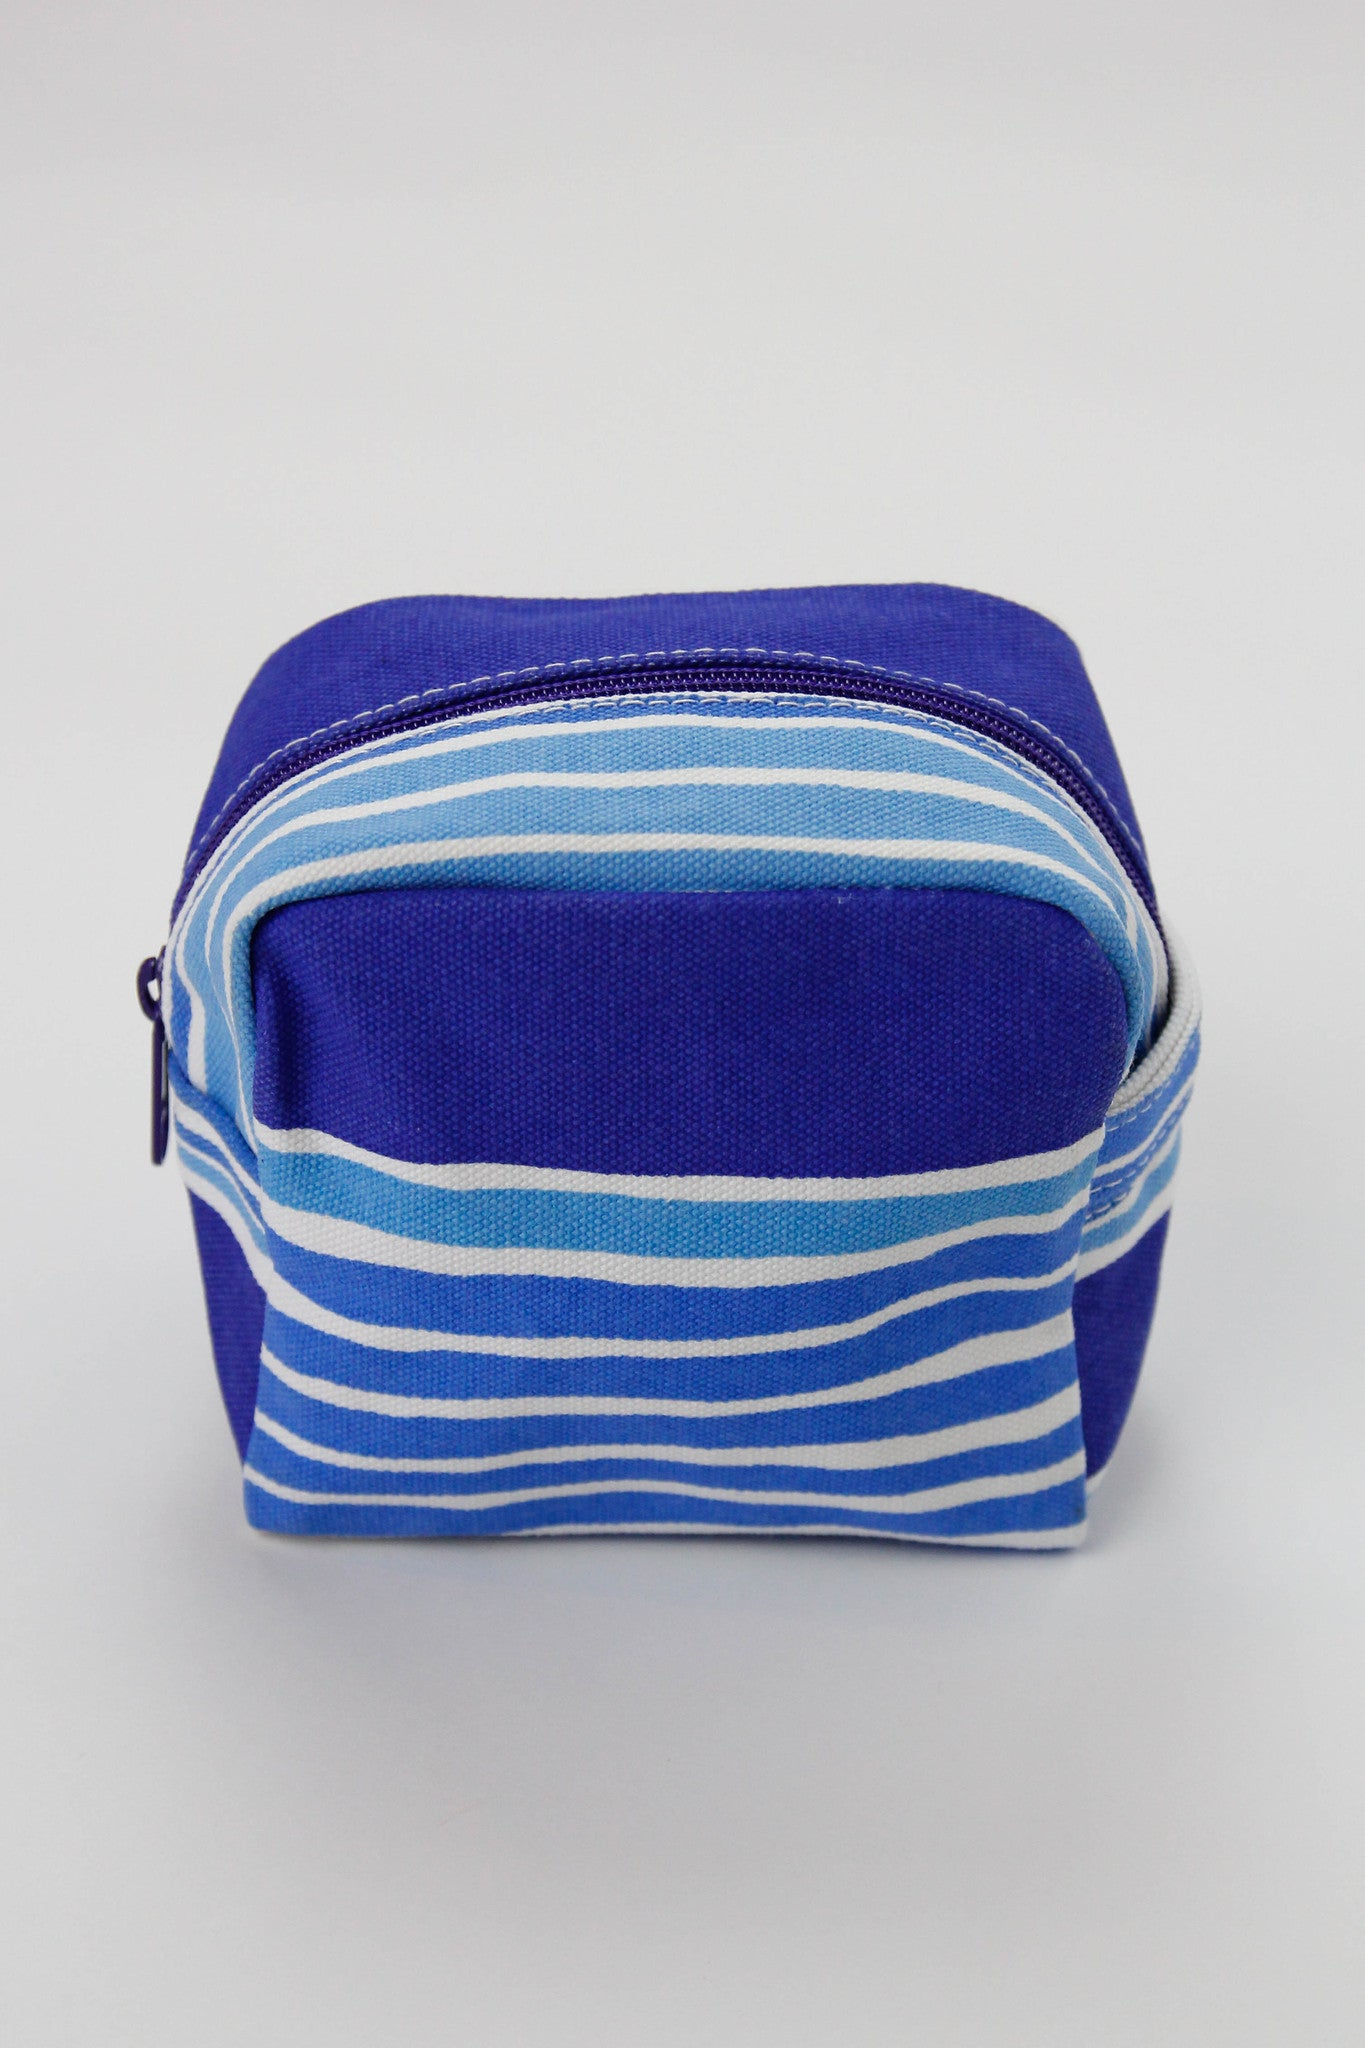 Small Cosmetic Bag - Layer Stripe Blues